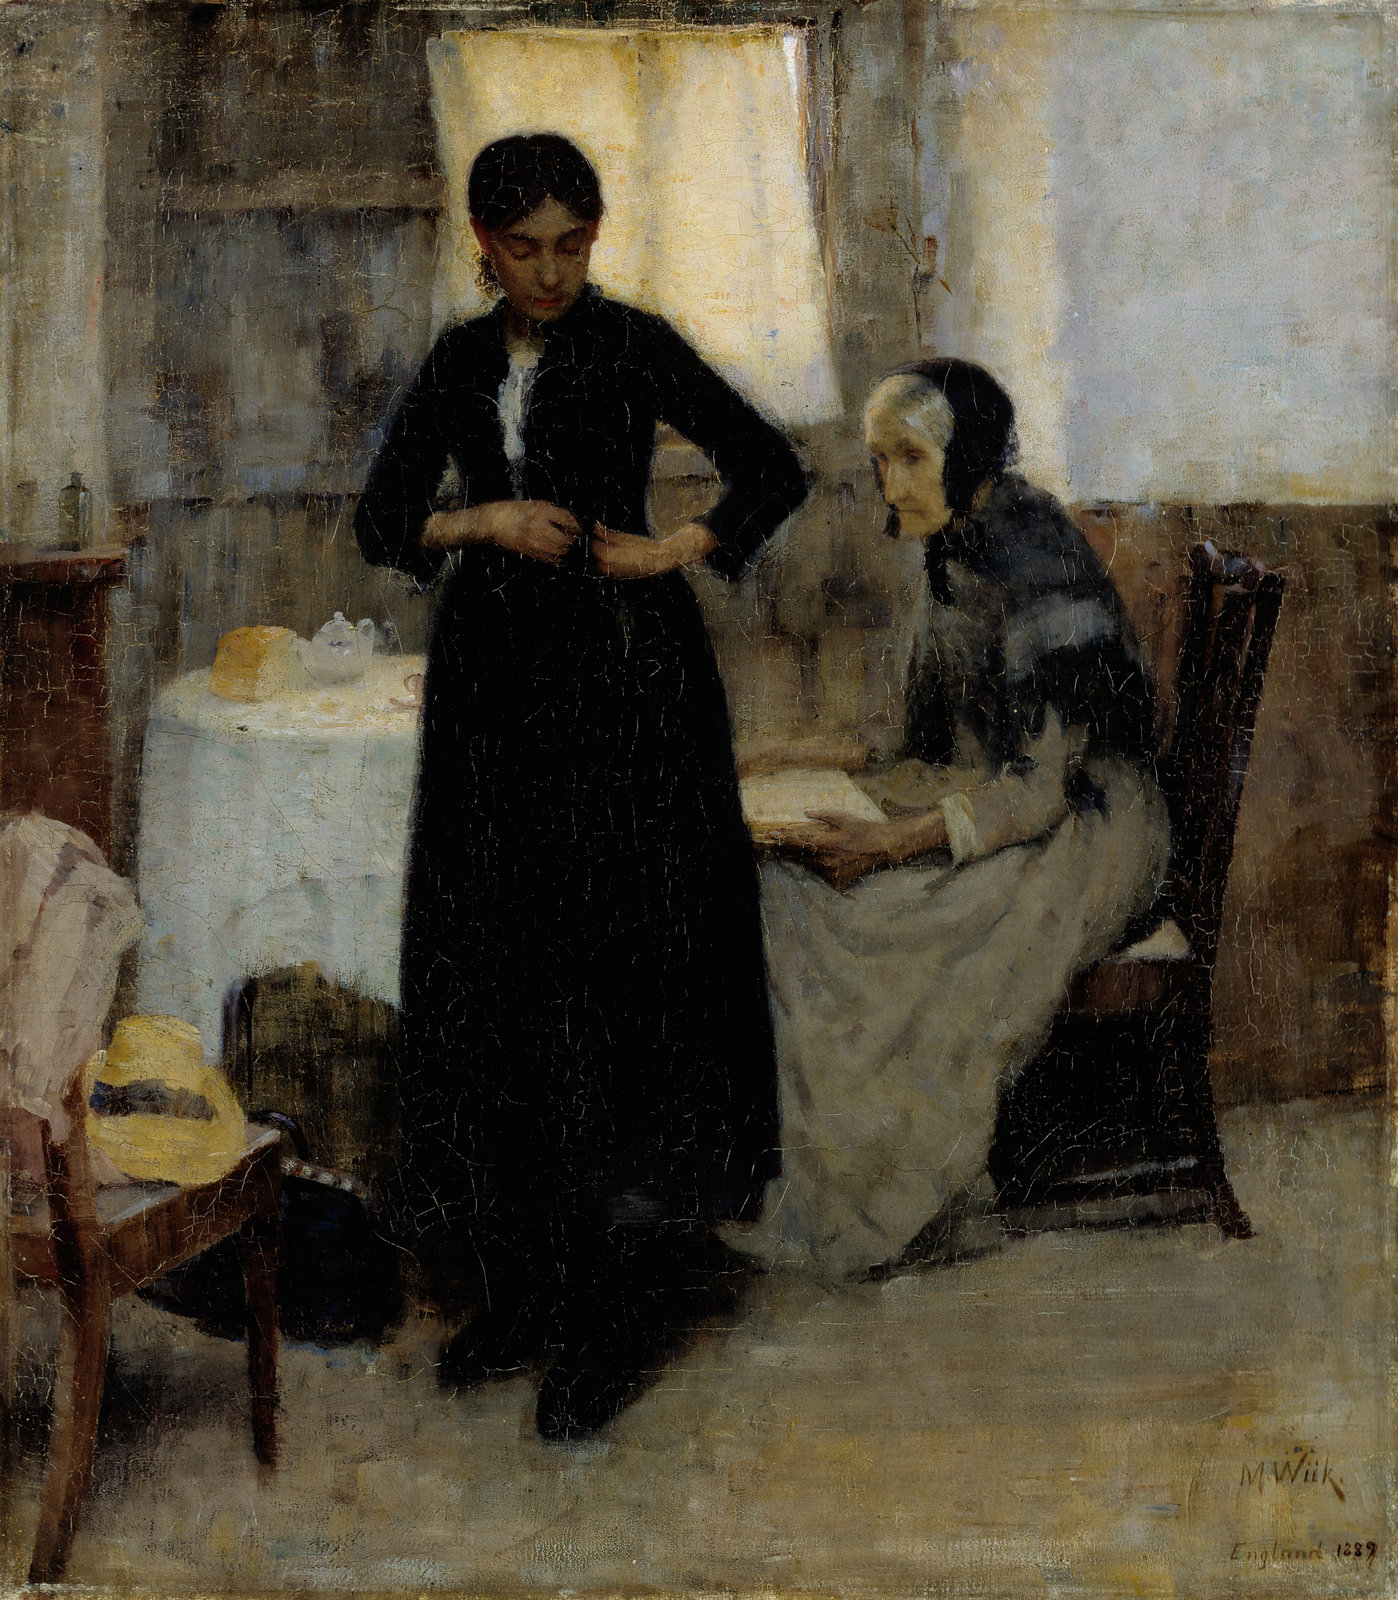 Out into the World, 1889, Maria Wiik, Finnish National Gallery, CC BY